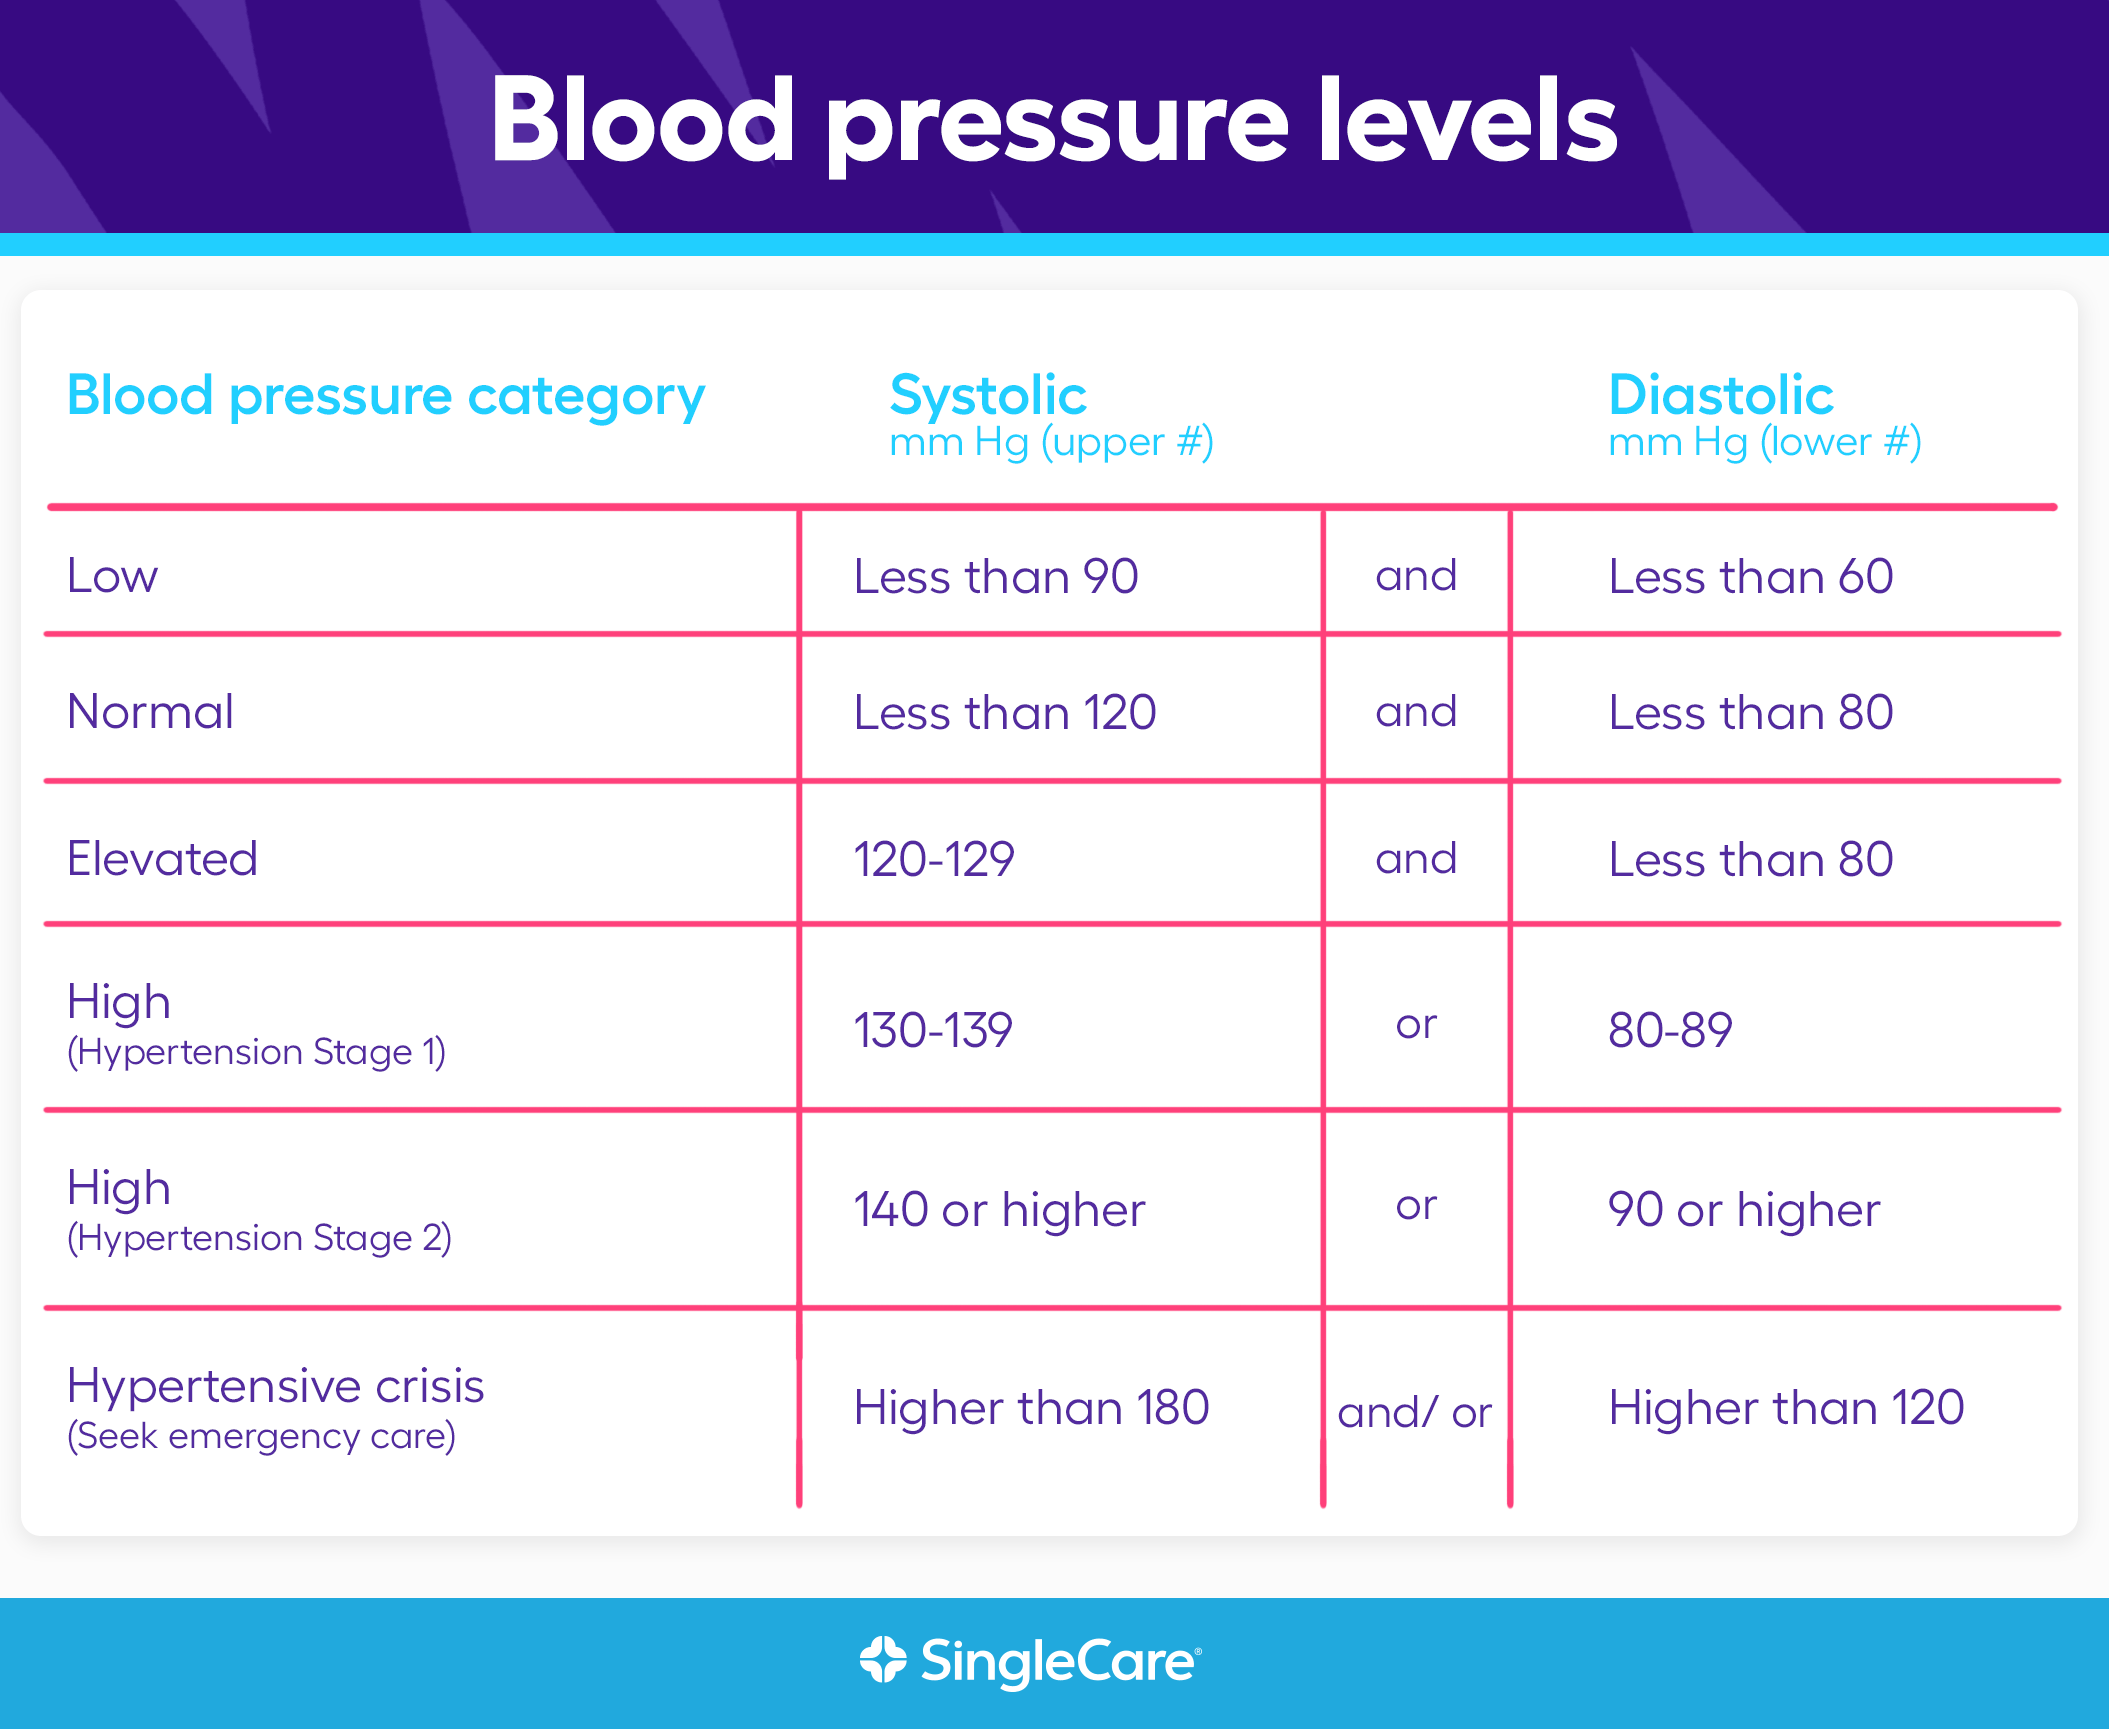 What are normal blood pressure levels